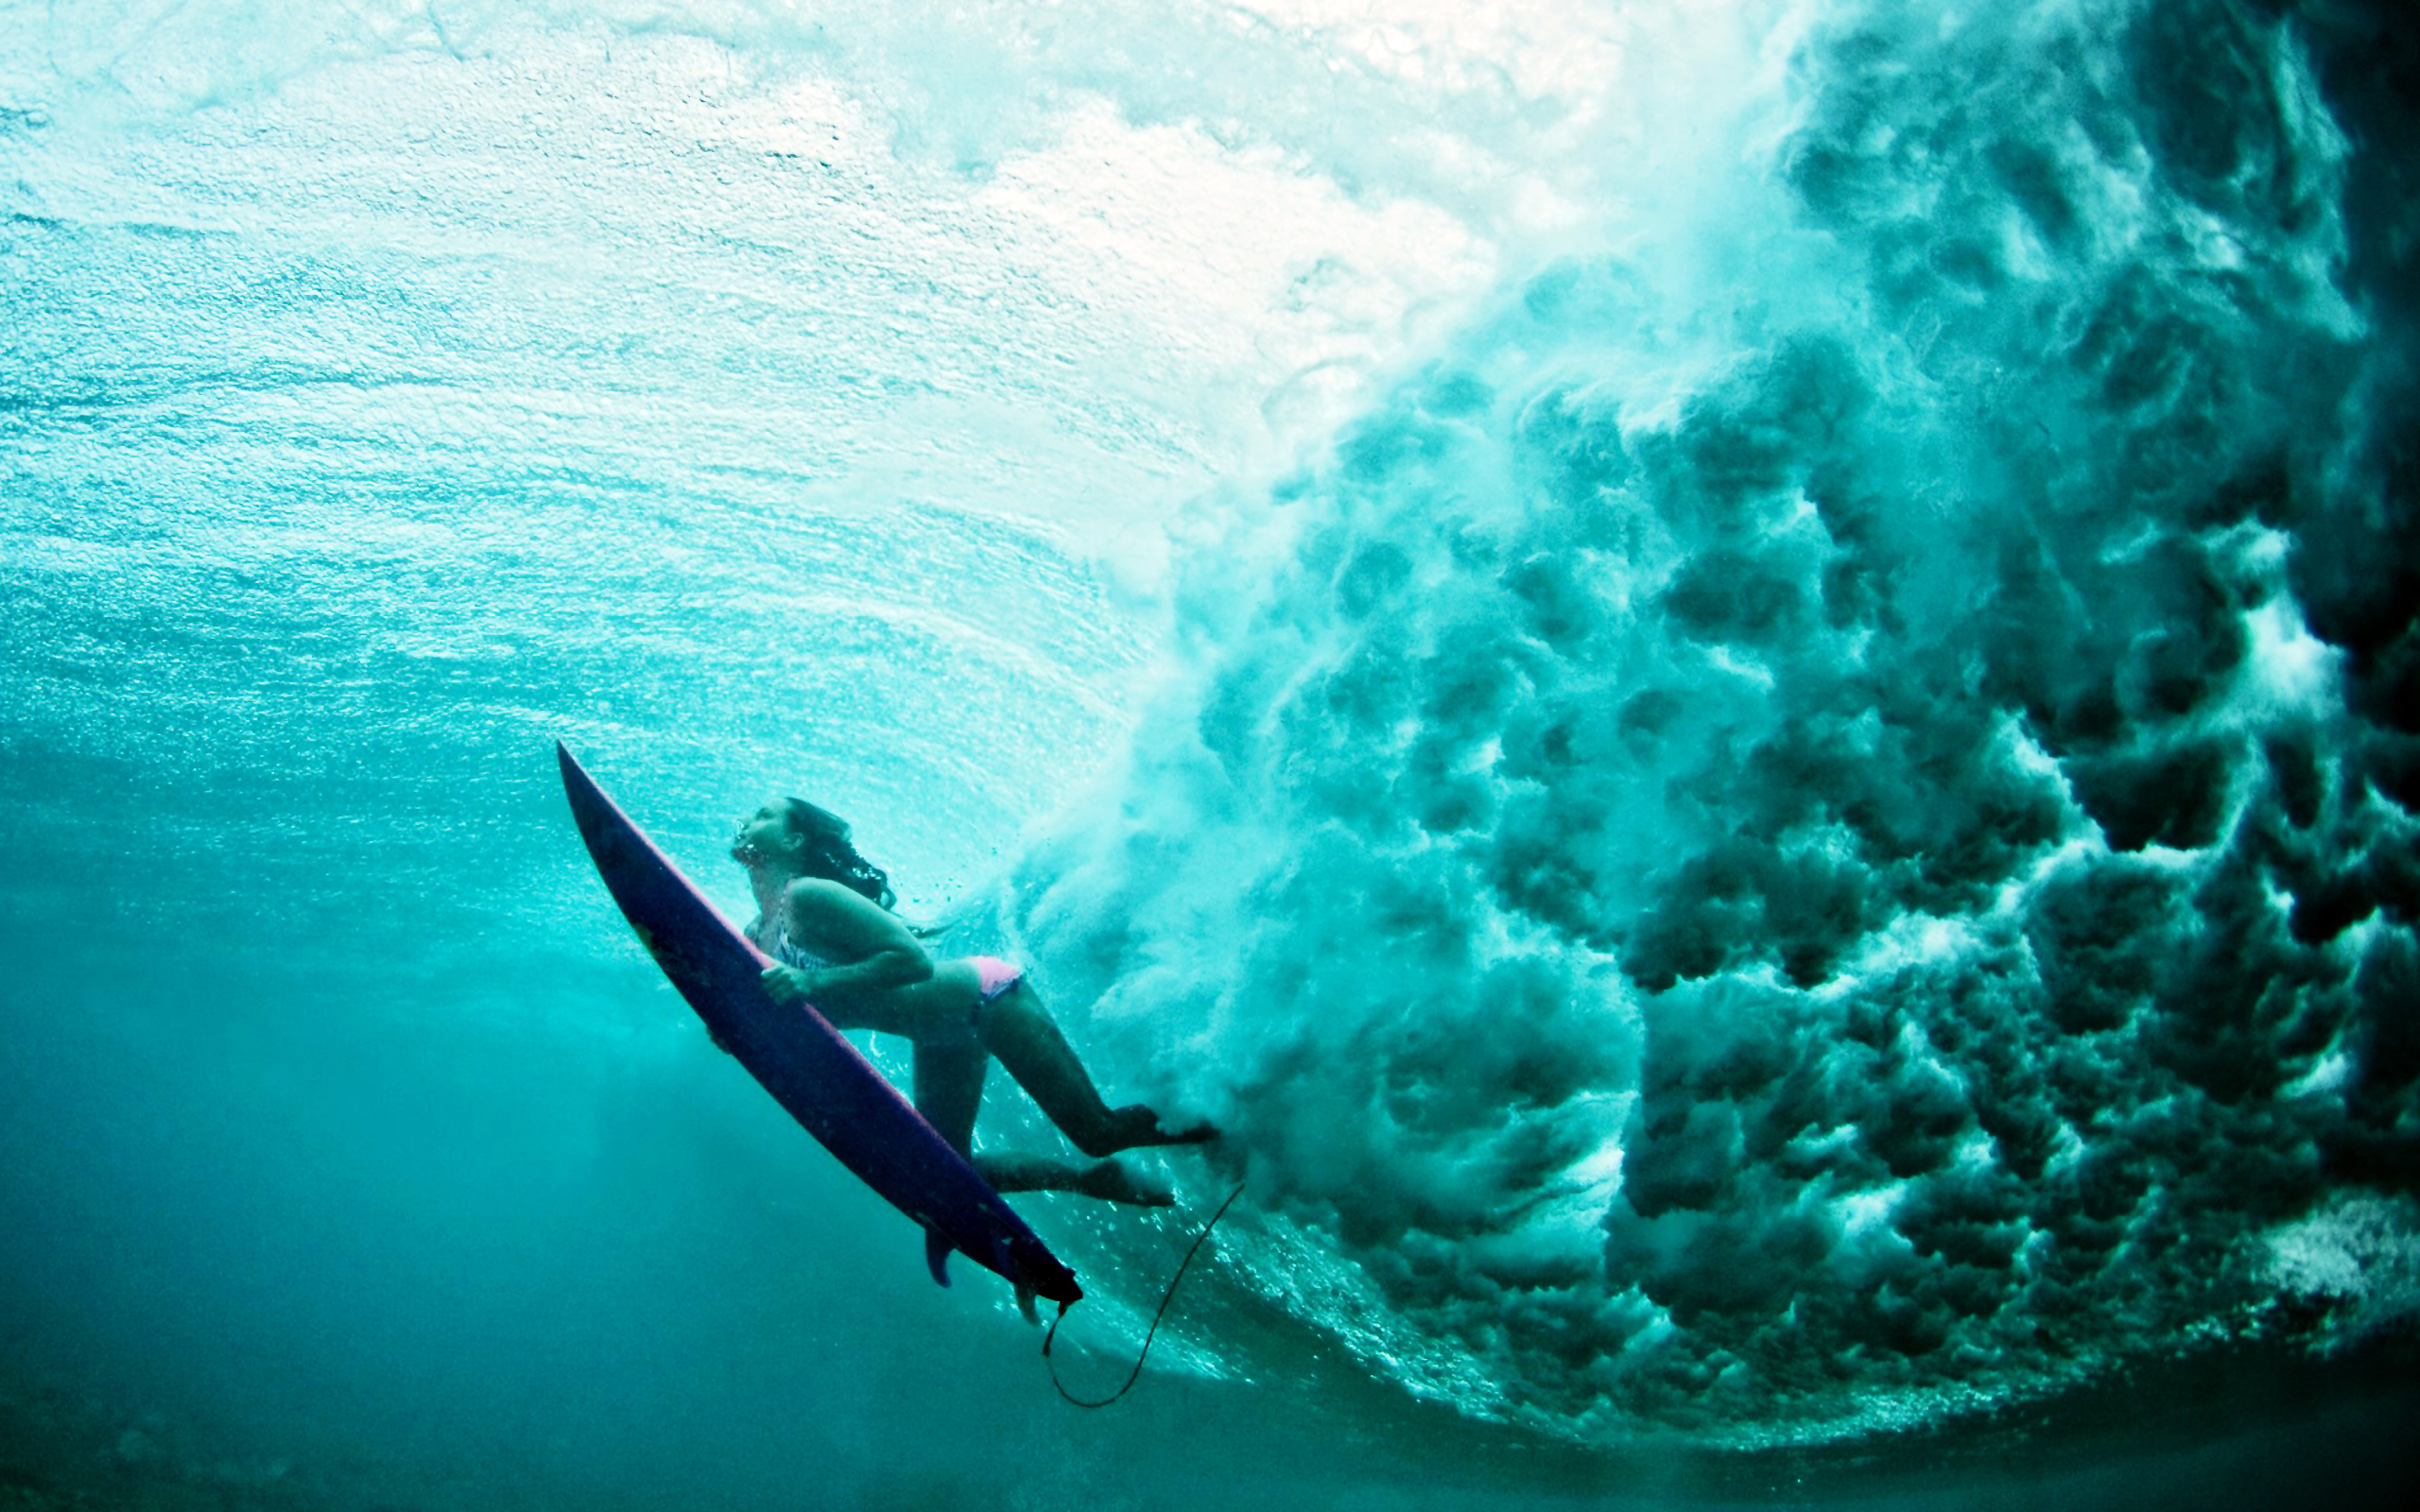 Underwater surf girl wallpaper   Fondo de Pantalla   Wallpapers 2560x1600